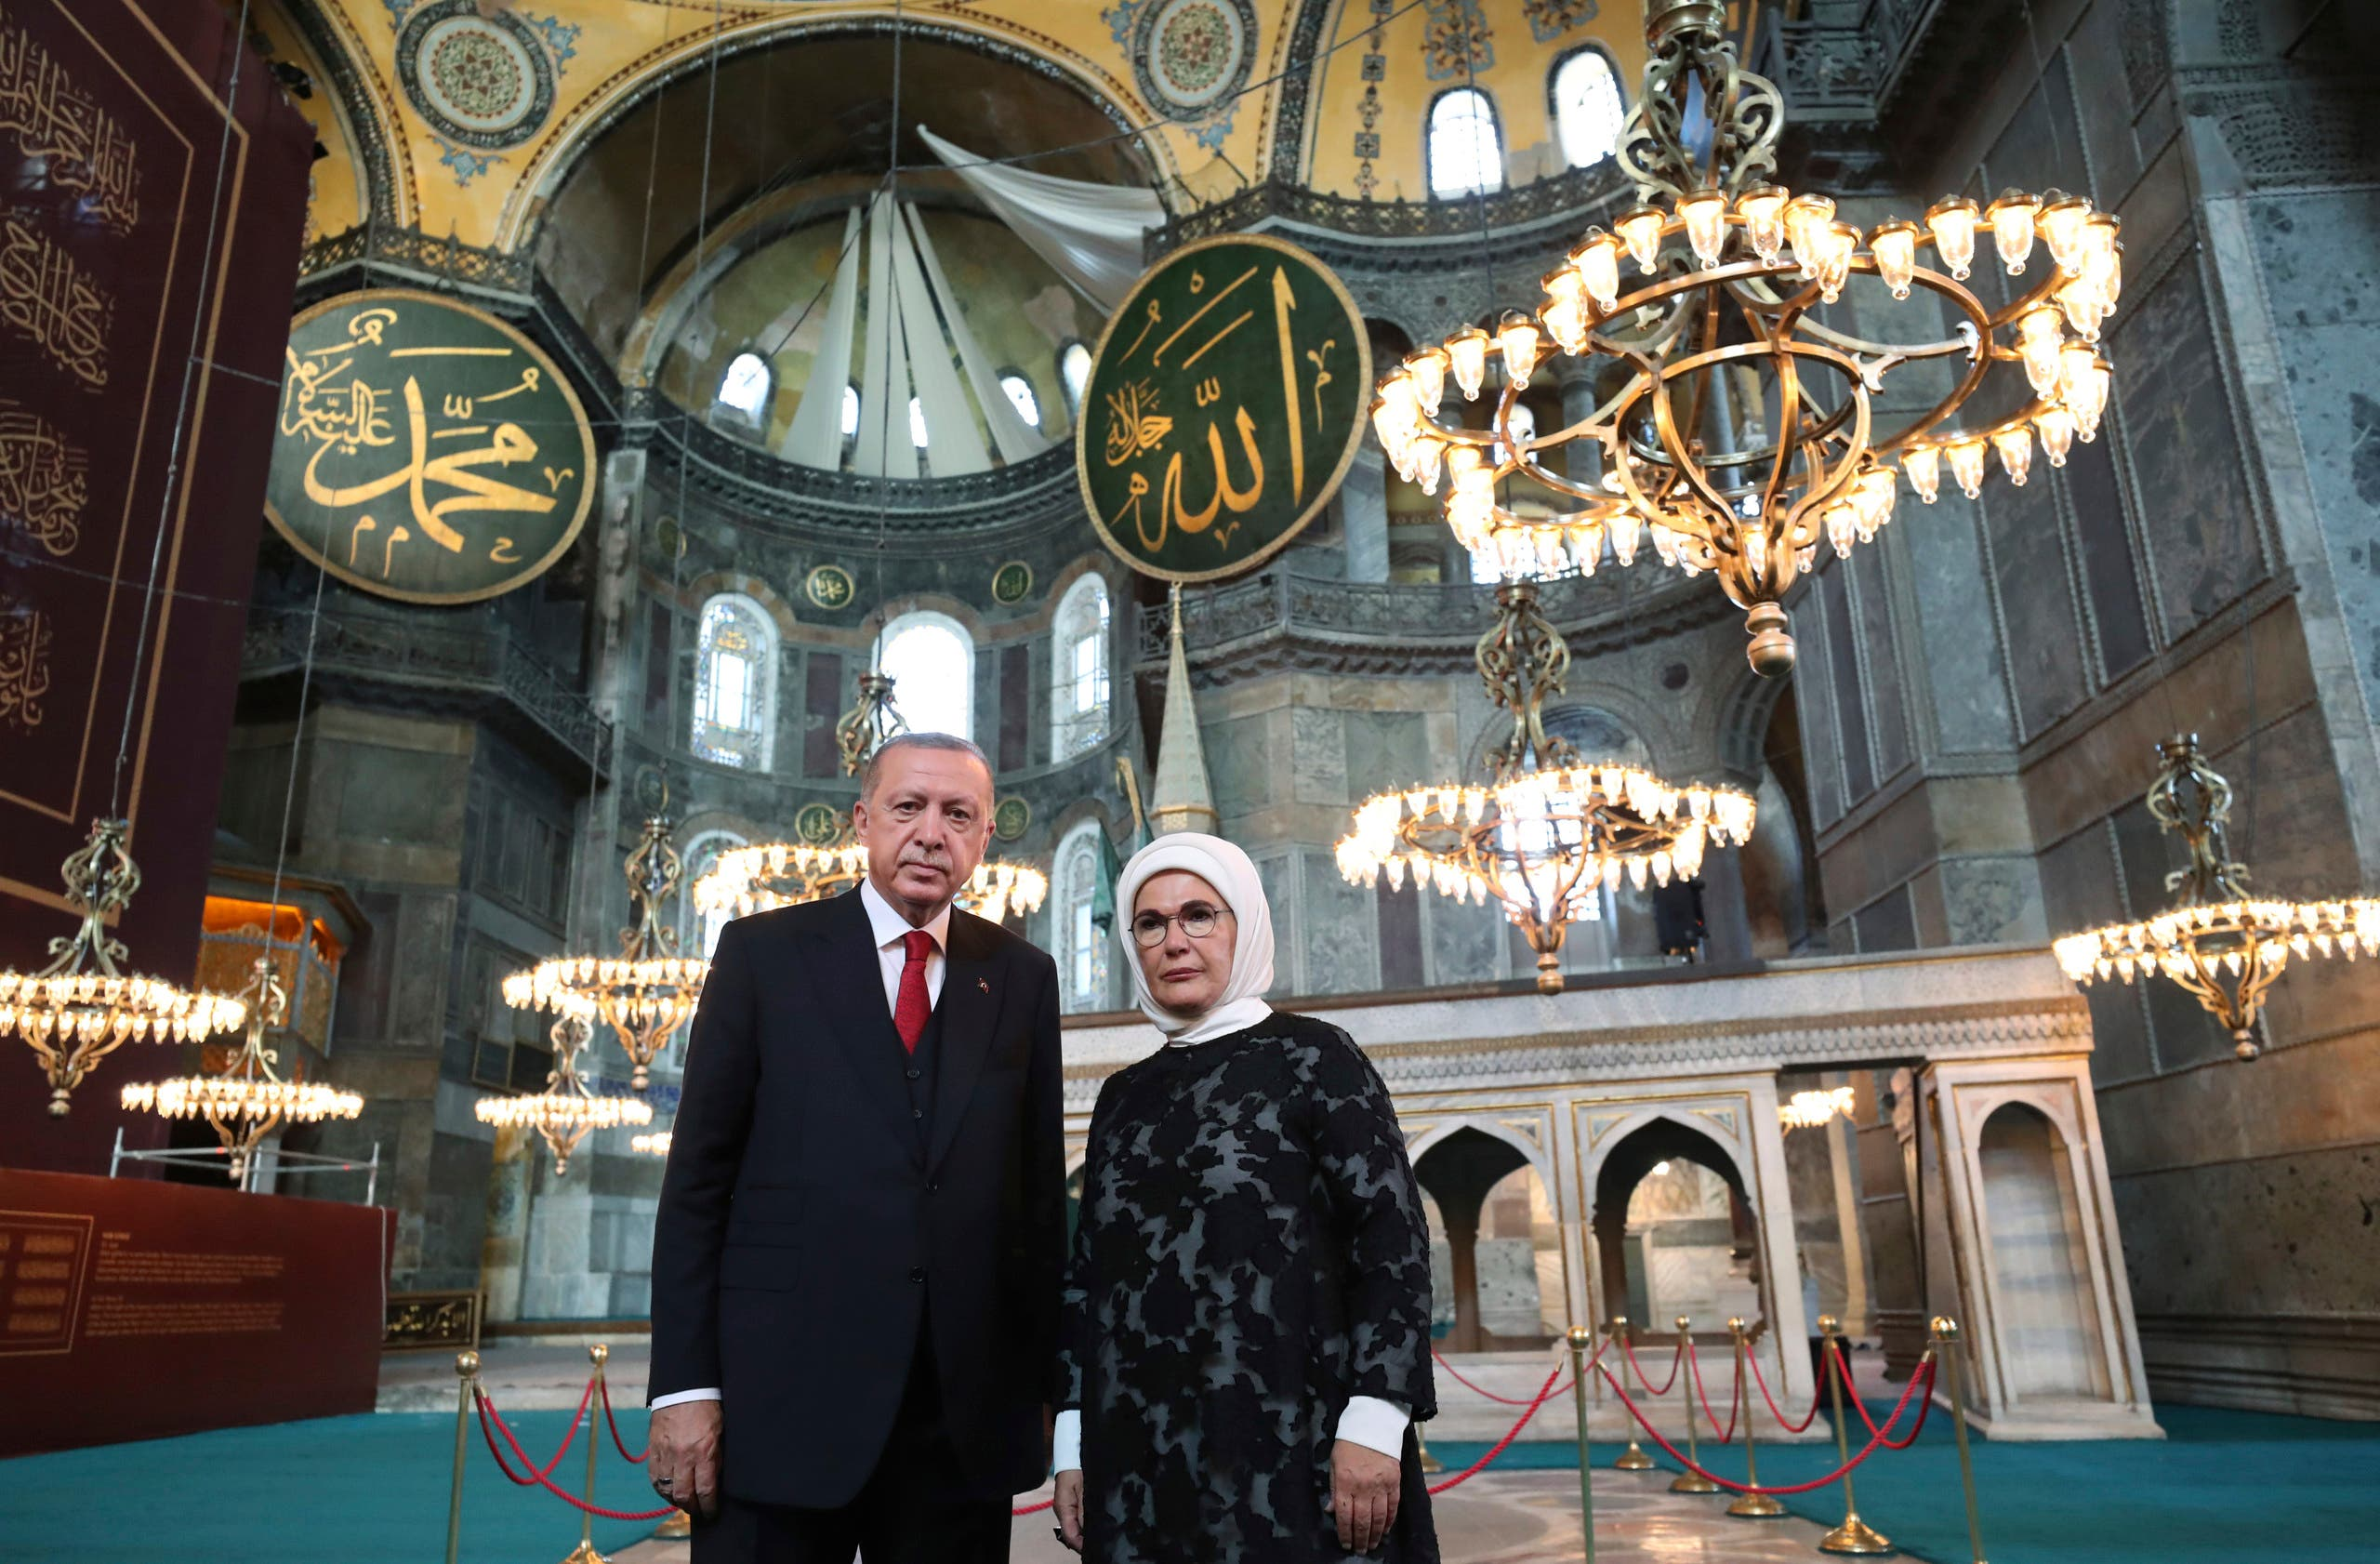 Turkey's President Recep Tayyip Erdogan, accompanied by his wife Emine, poses for photographs as he visits the Byzantine-era Hagia Sophia, in Istanbul on July 23, 2020. (AP)